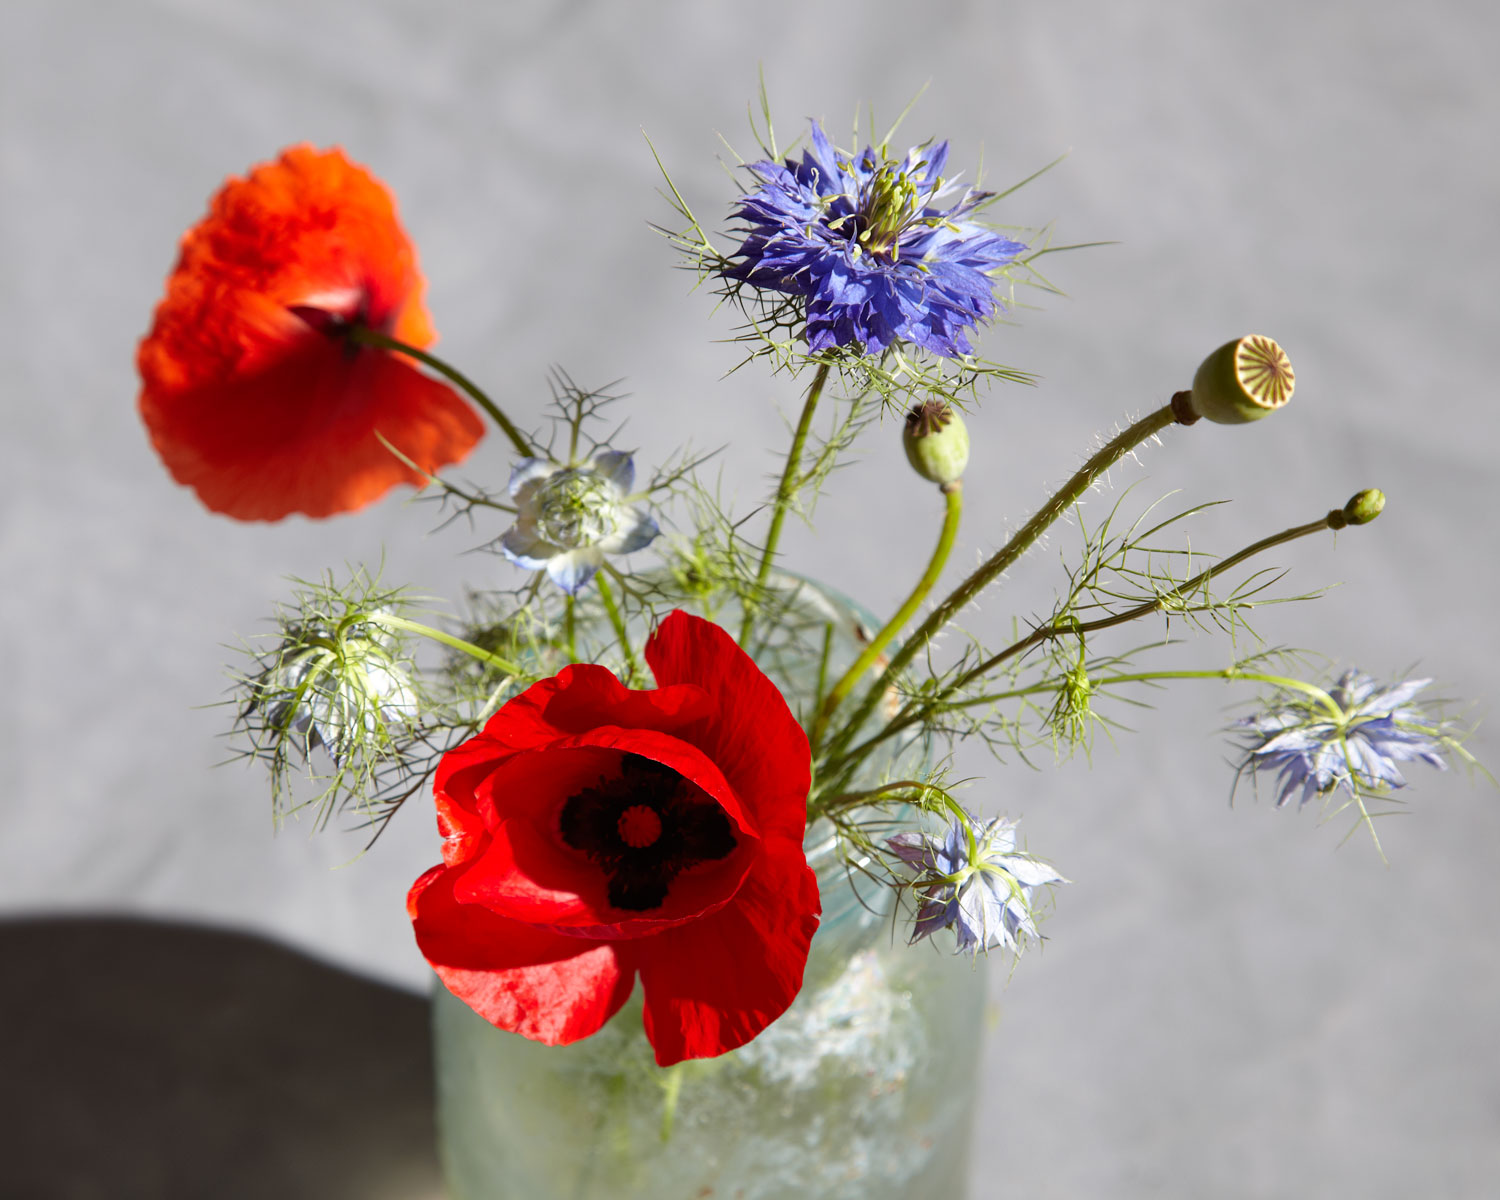 poppies-and-nigella-7109.jpg